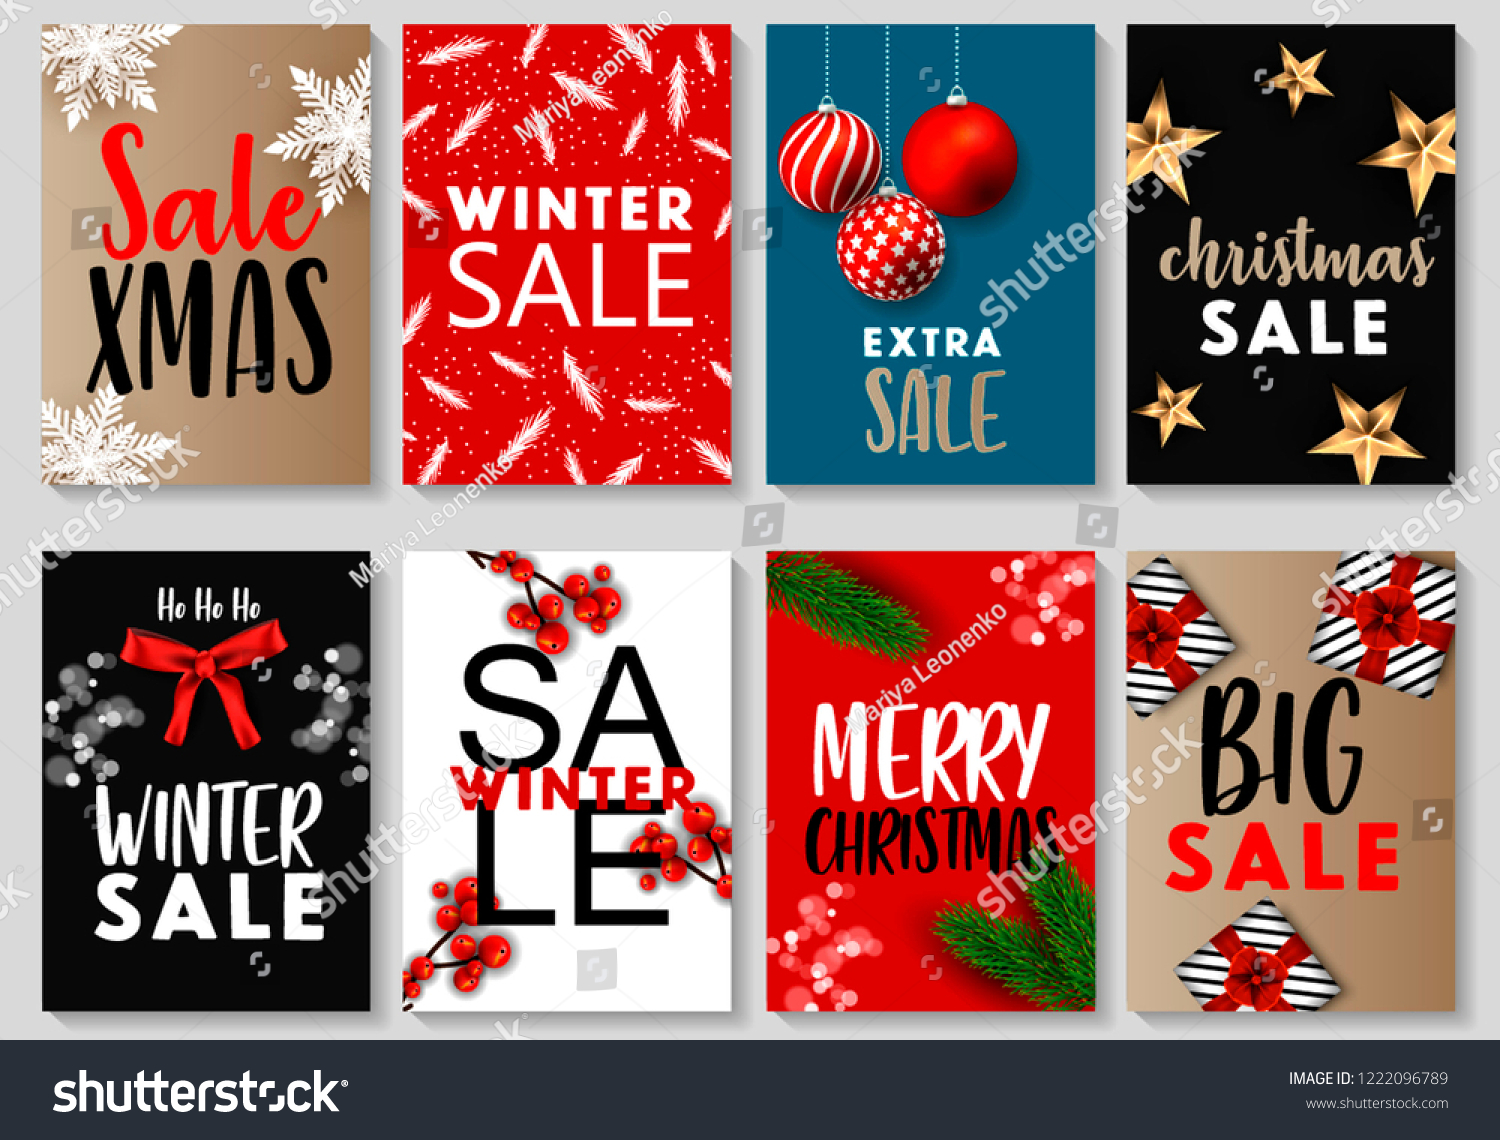 Merry Christmas New Year Mobile Sale Stock Vector (Royalty